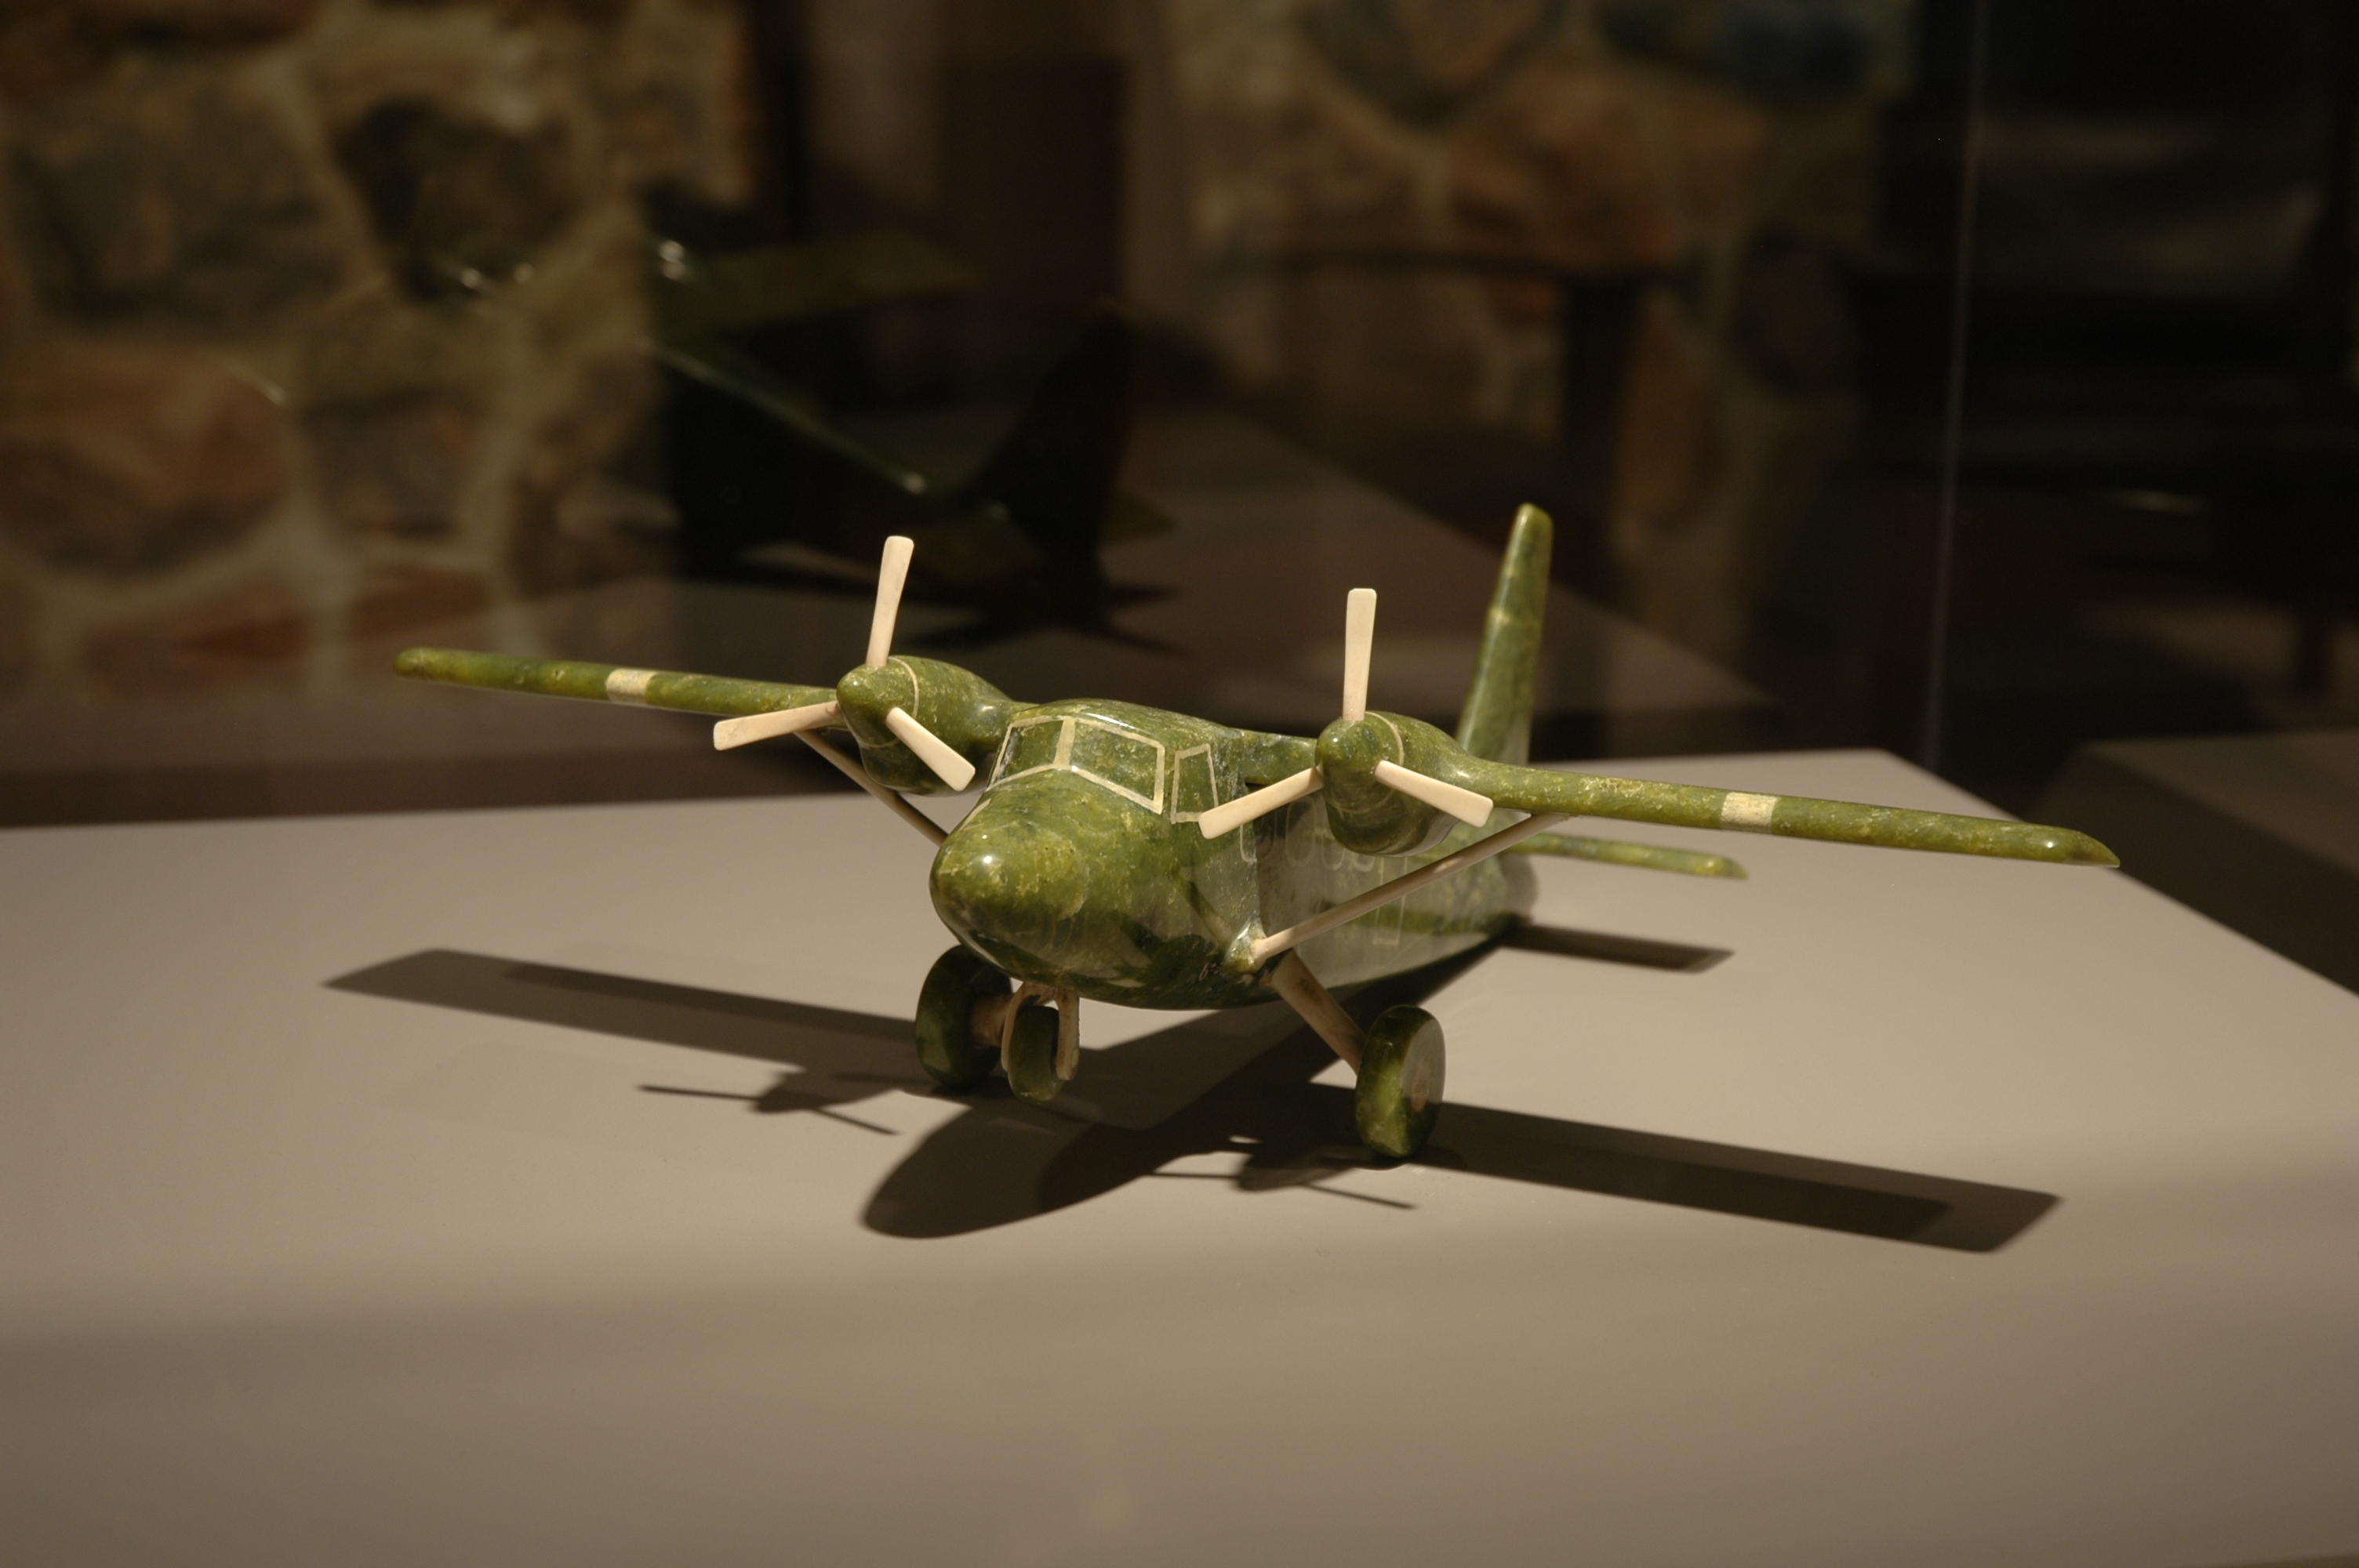 green stone carving of a twin engine airplane